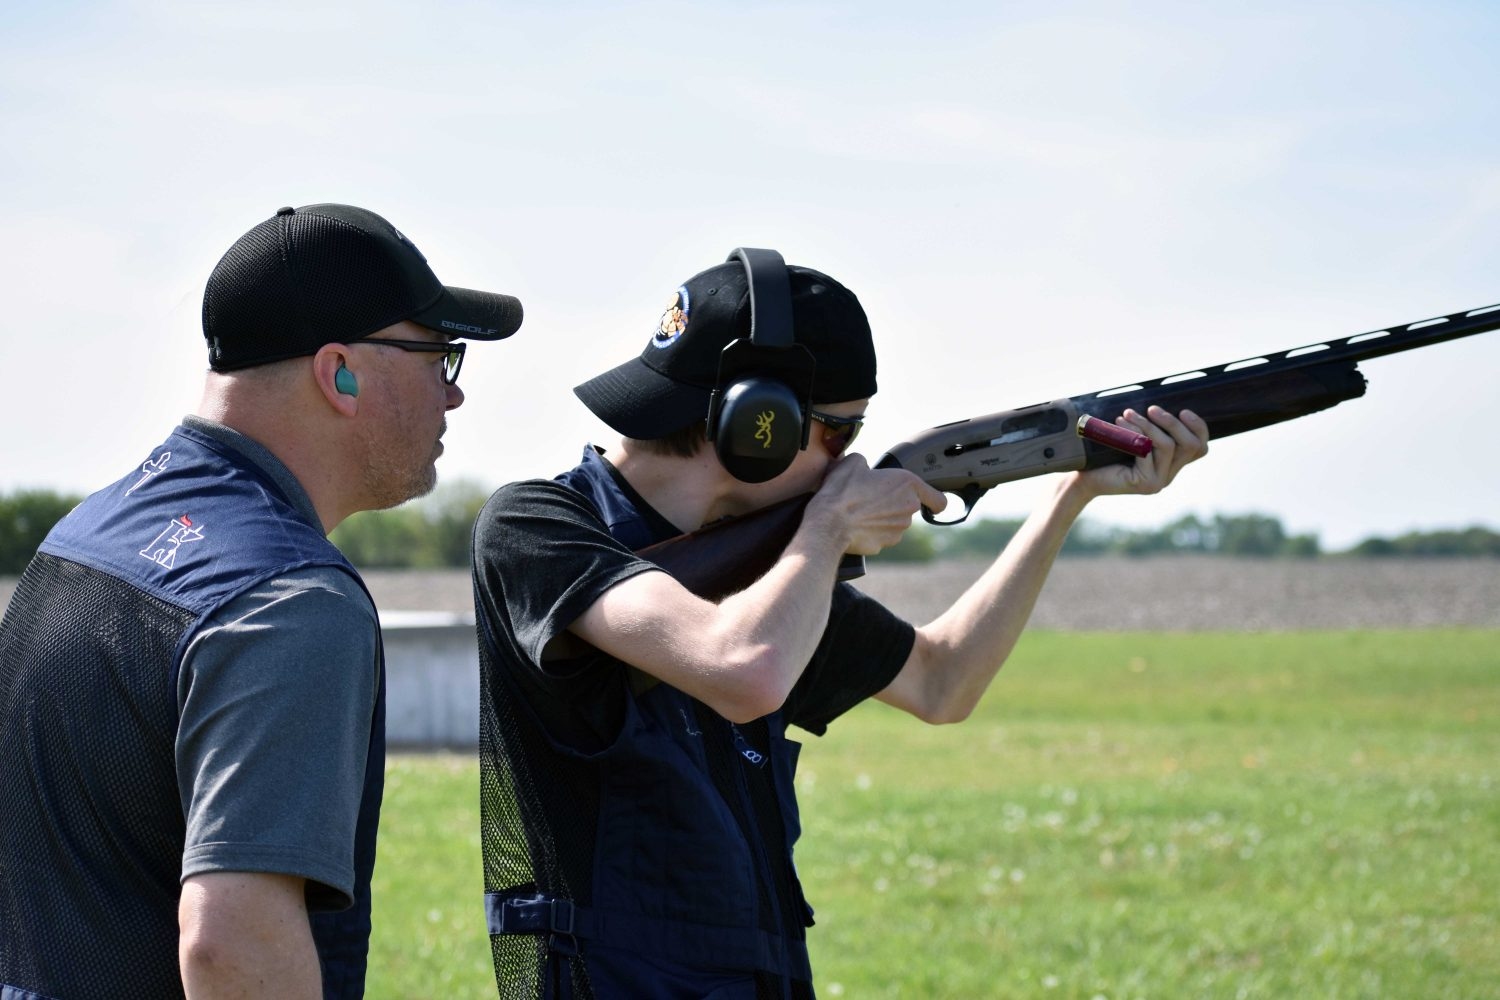 Trap+shooting+team+coach+Chris+Harter+watches+on+as+shooter+Jordan+Ehrke+points+his+shotgun+during+practice+at+Ark+Valley+Gun+Club+April+23.